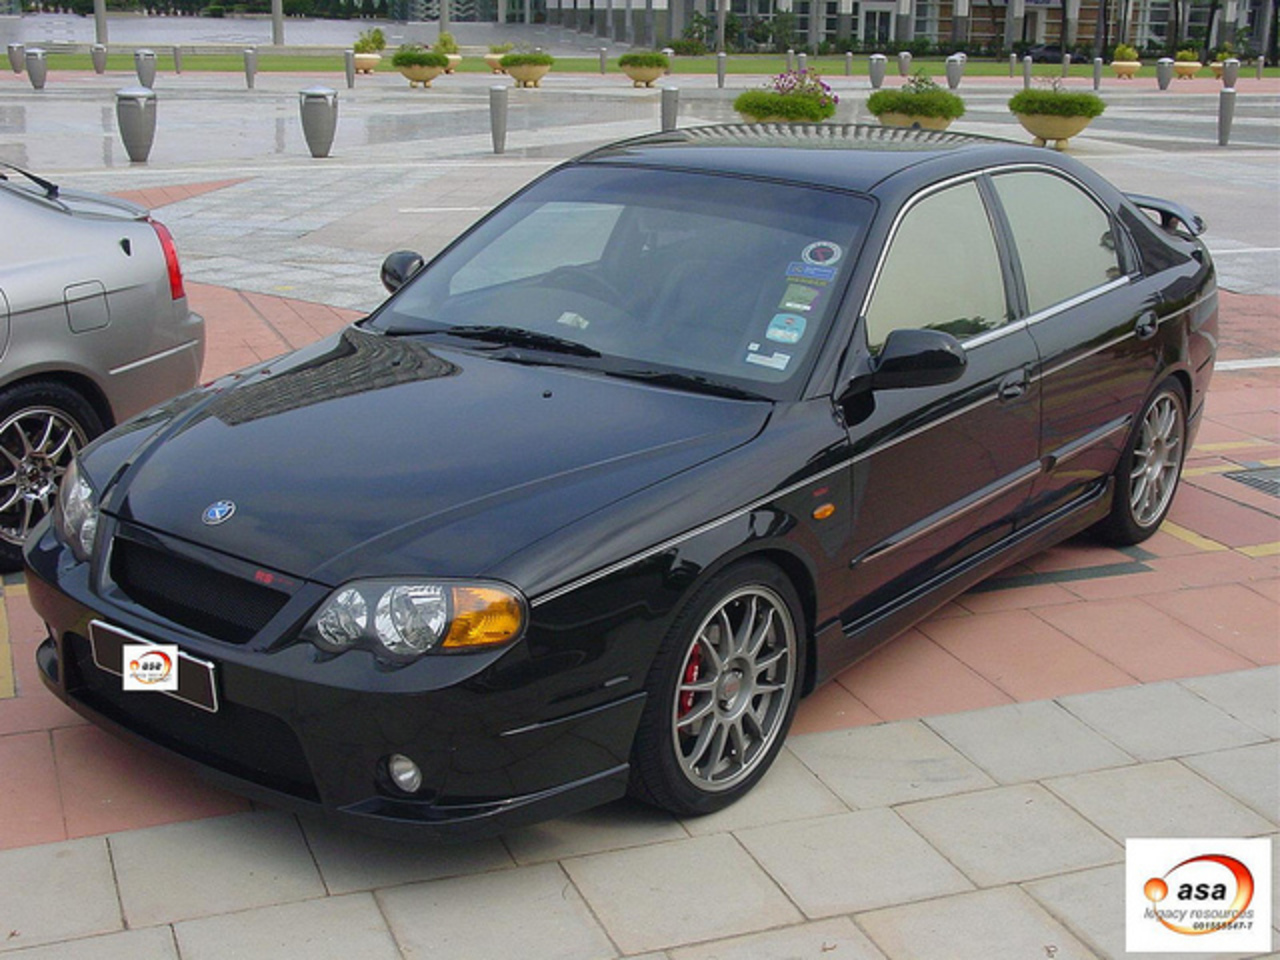 KIA Spectra RS Bumper | Flickr - Photo Sharing!